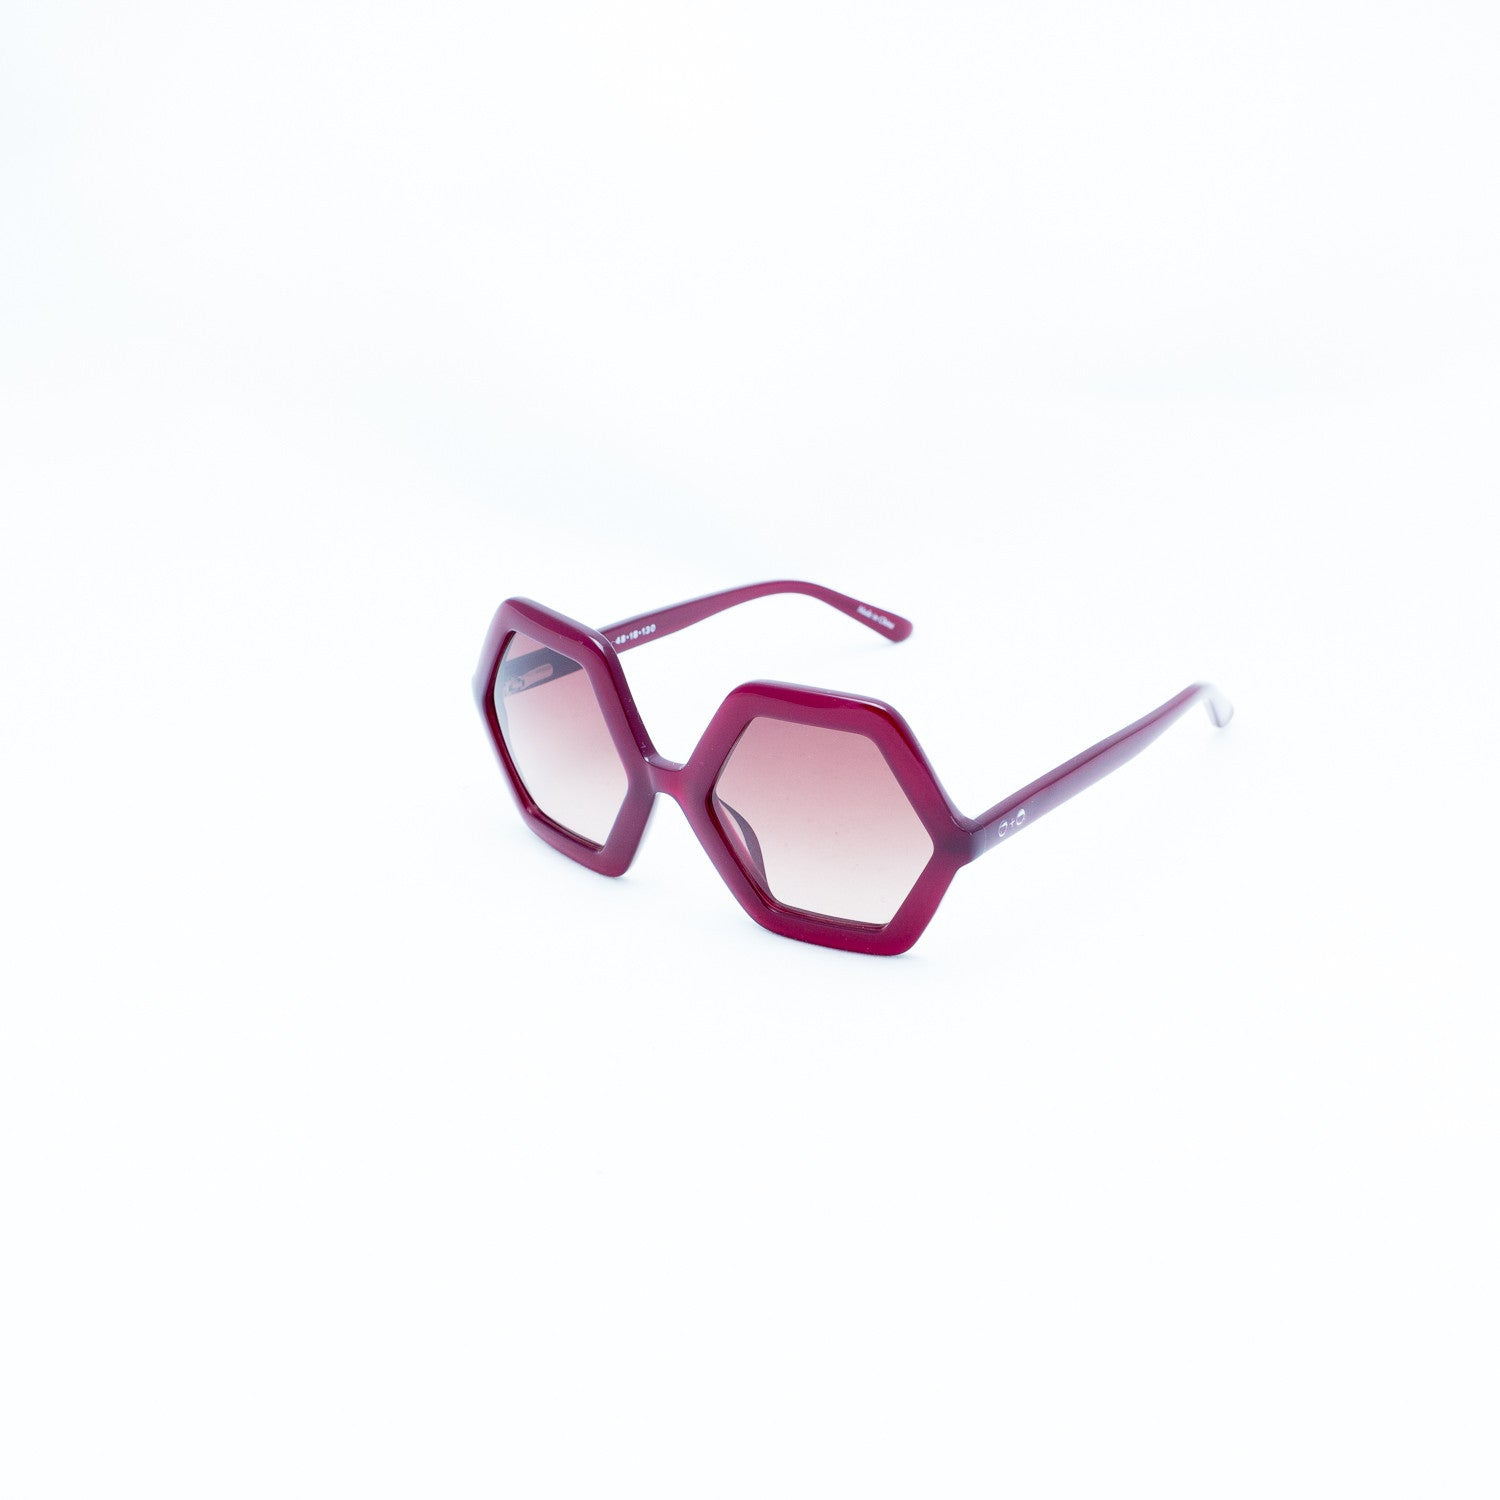 Honey sunglasses - burgundy - KID - 1